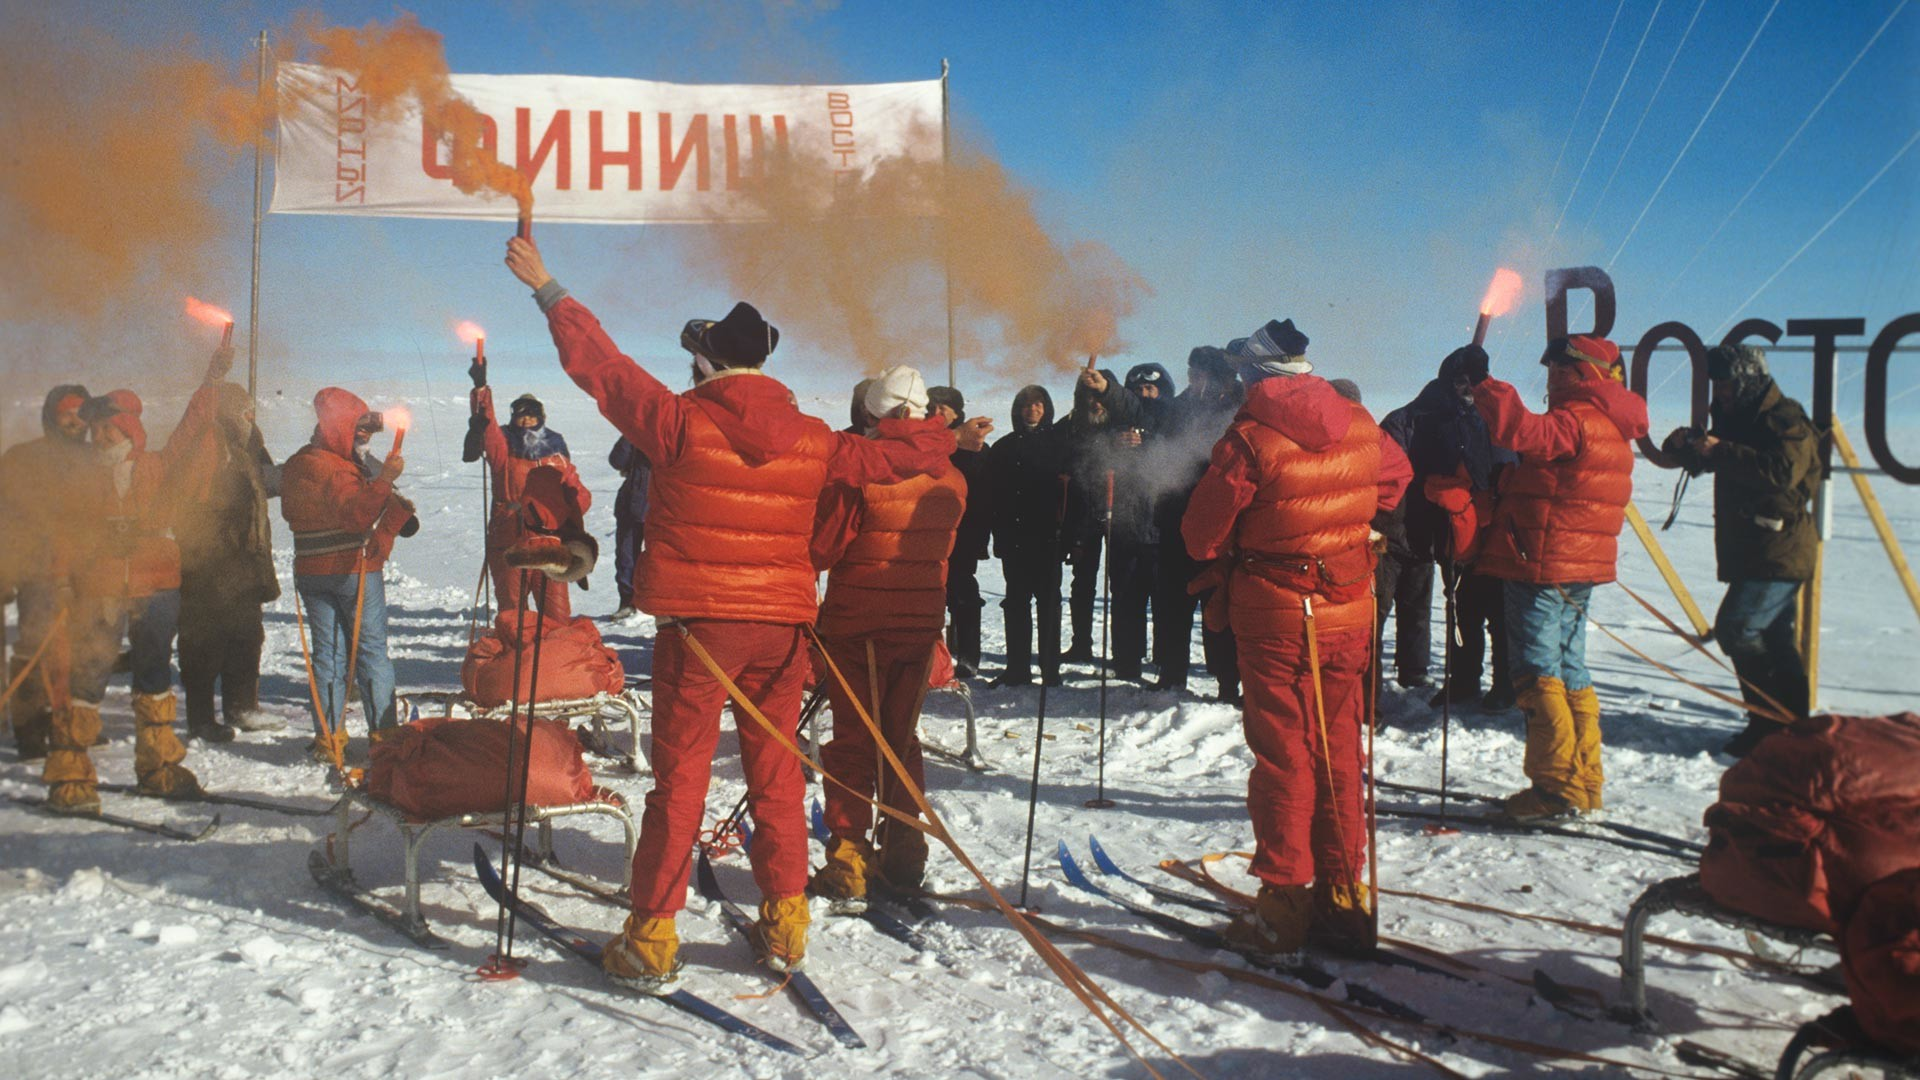 For the last 12 kilometers, the women walked dressed in red uniforms, to mark the latest achievement of the Soviet women that had previously been thought to be highly unlikely.